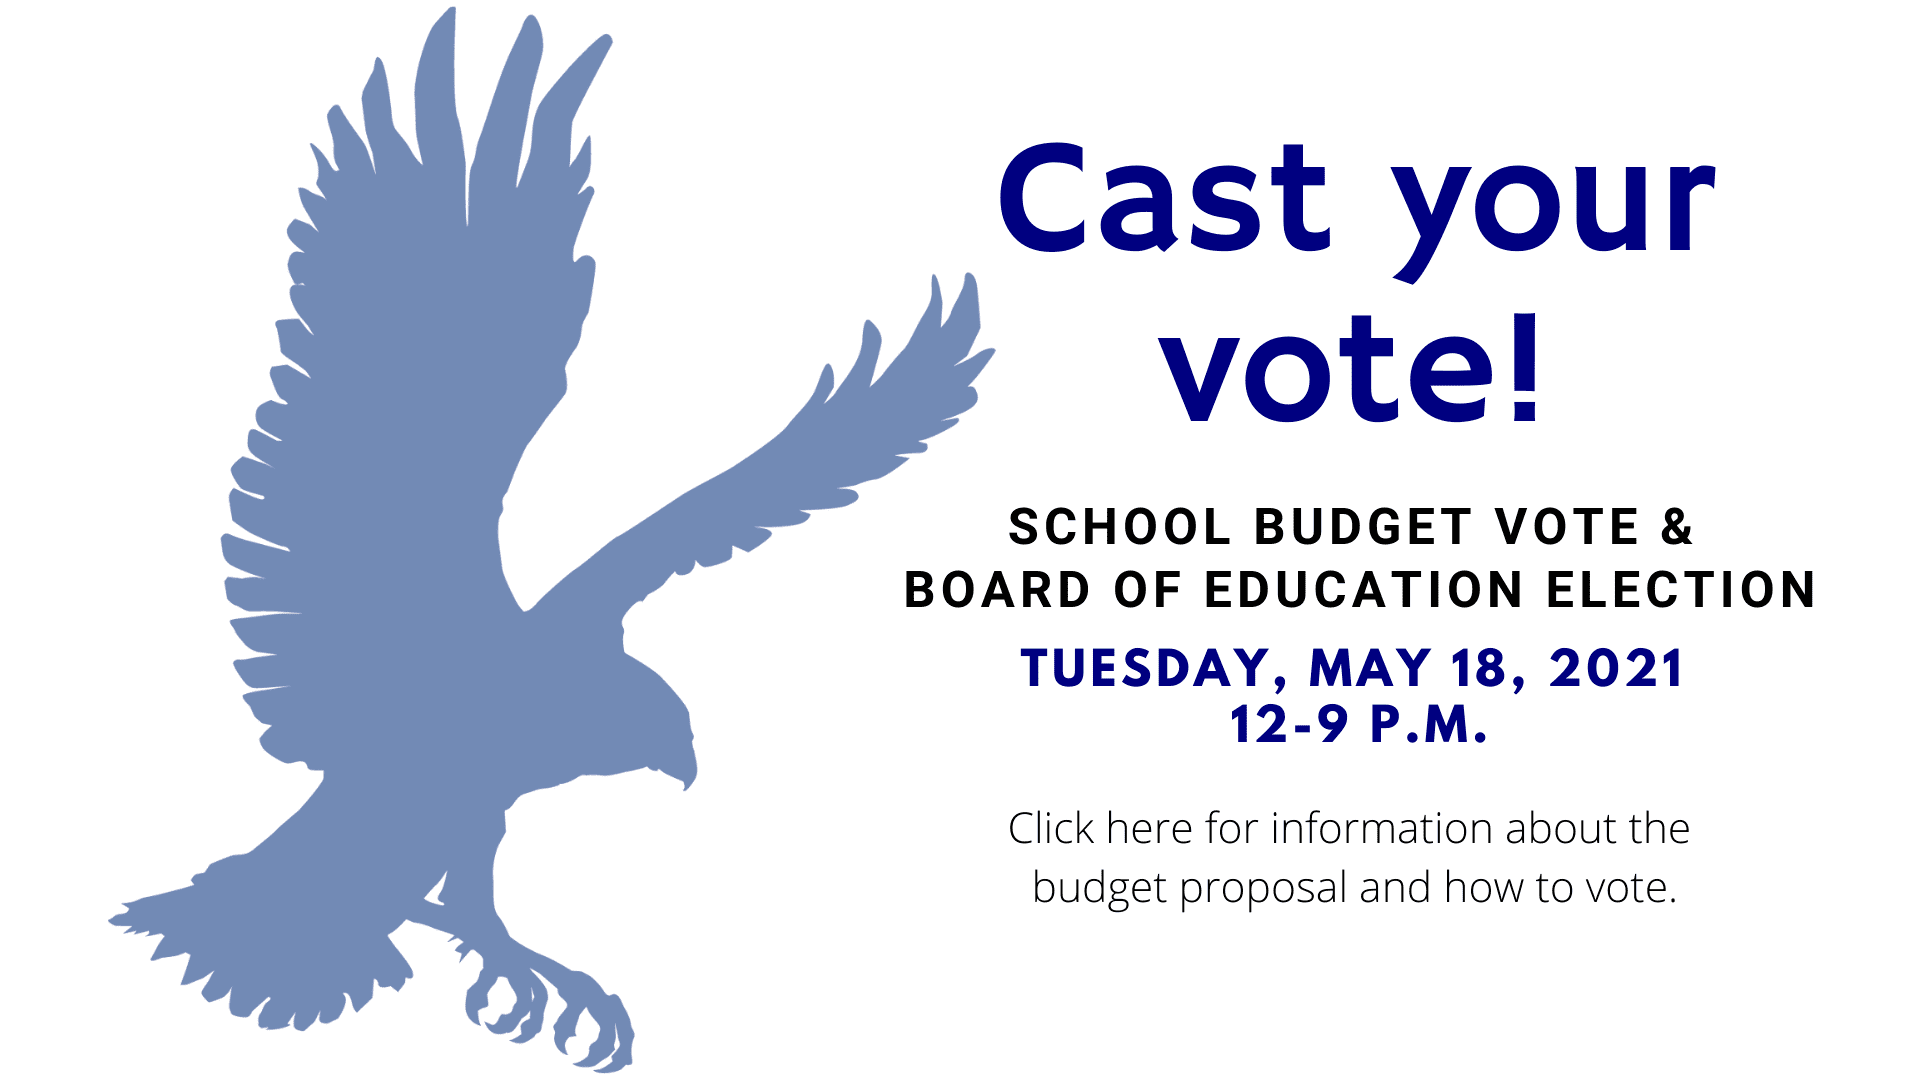 school budget vote tuesday, may 18, 2021 click here for more information